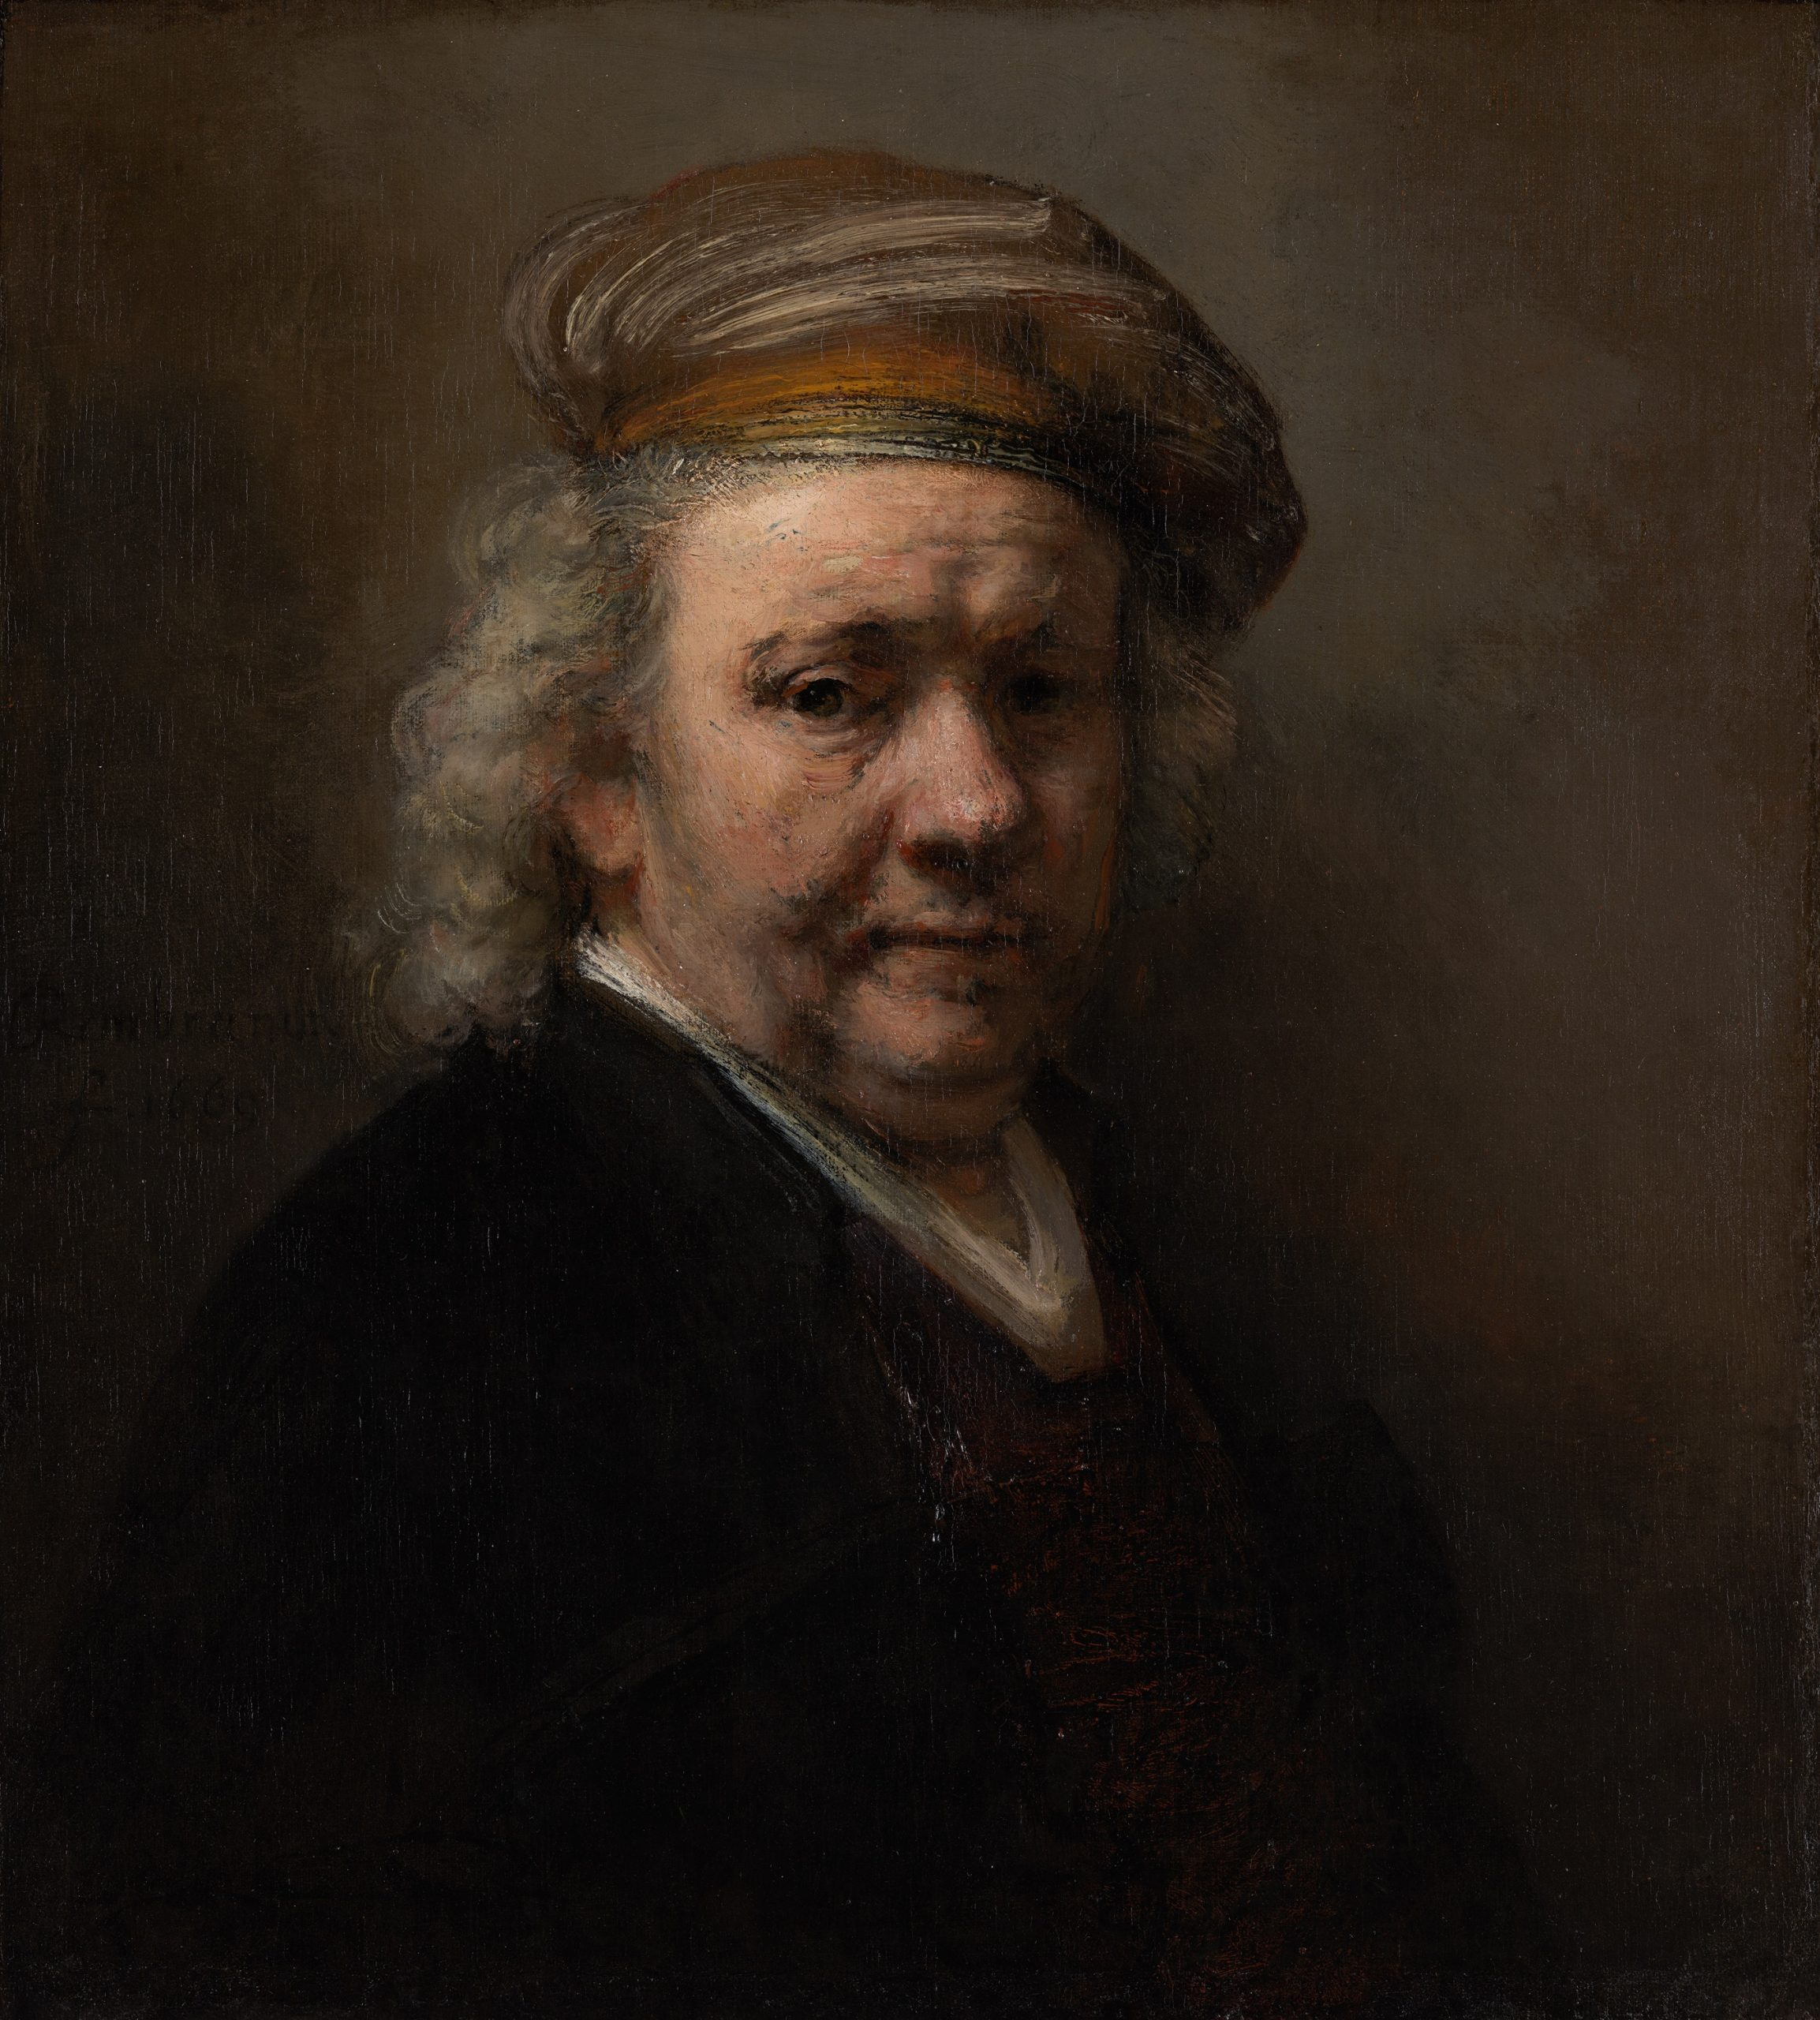 Rembrandt and portraits by invitation